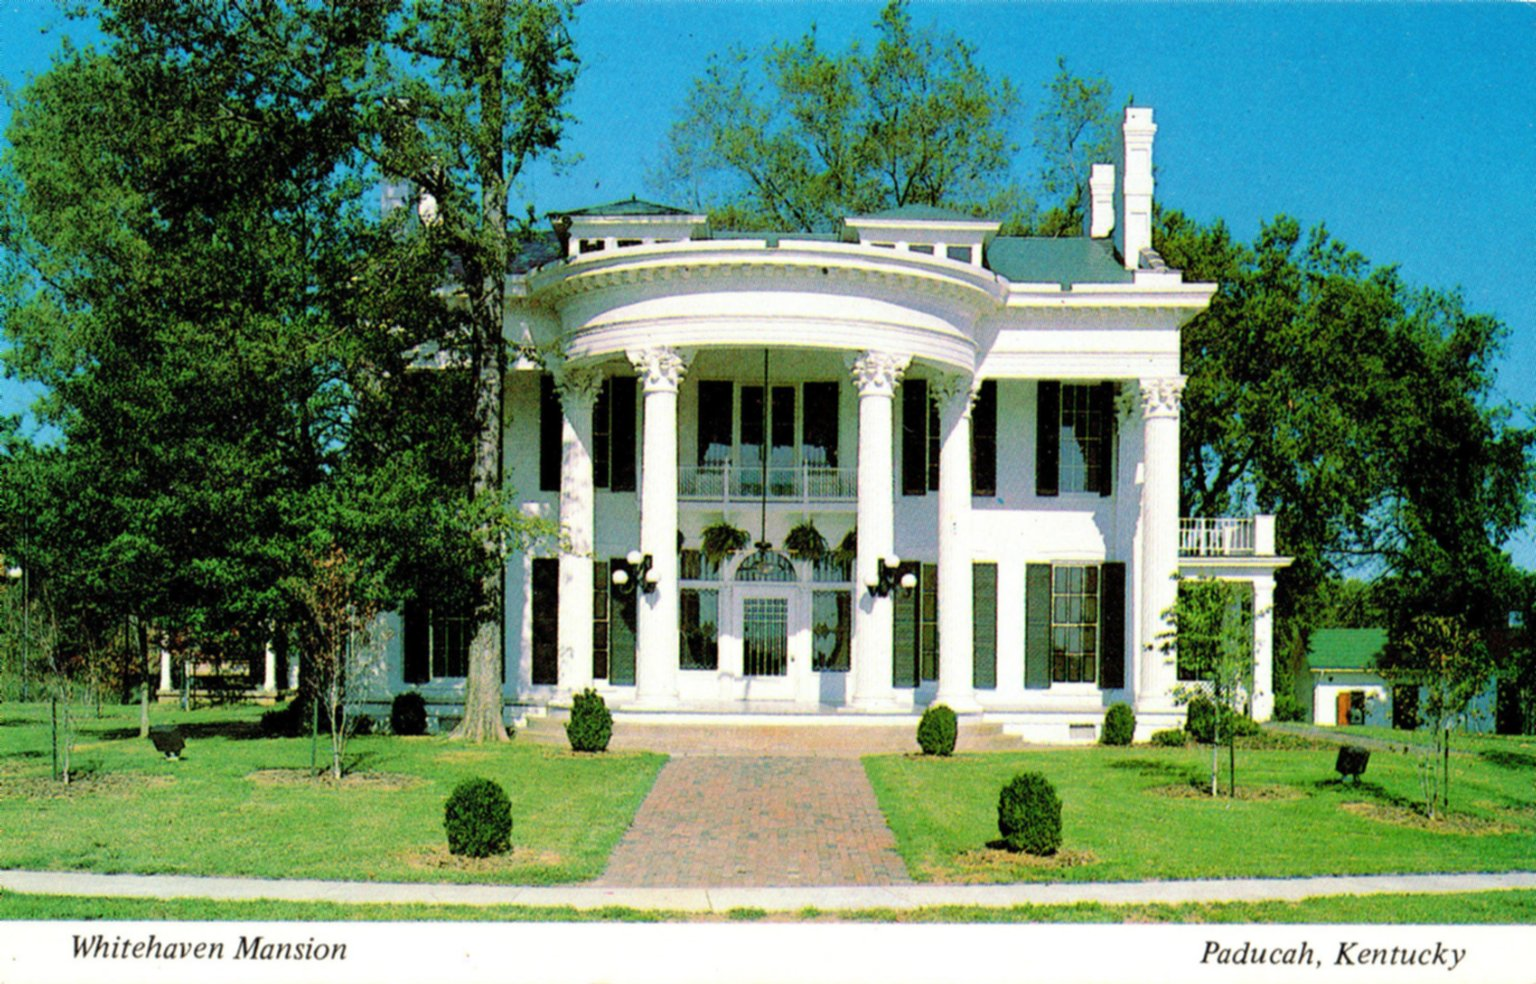 Whitehaven Mansion, Paducah, Kentucky